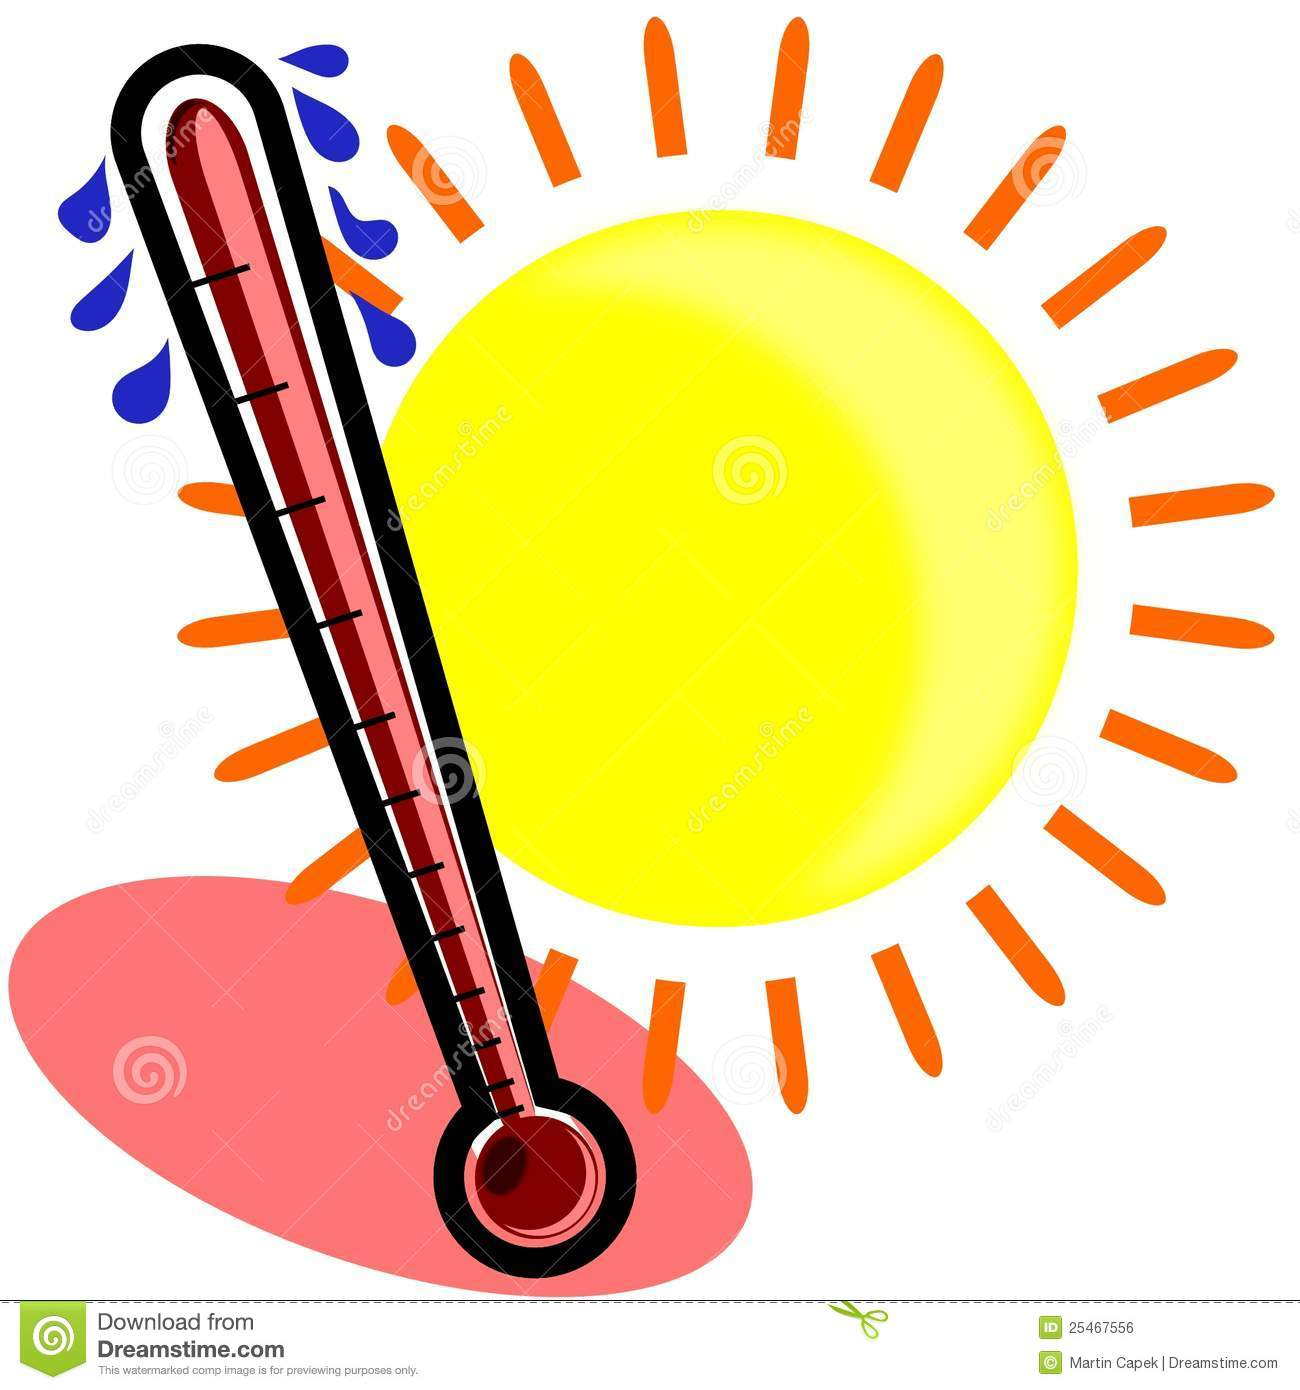 Heat clipart weather thermometer #7